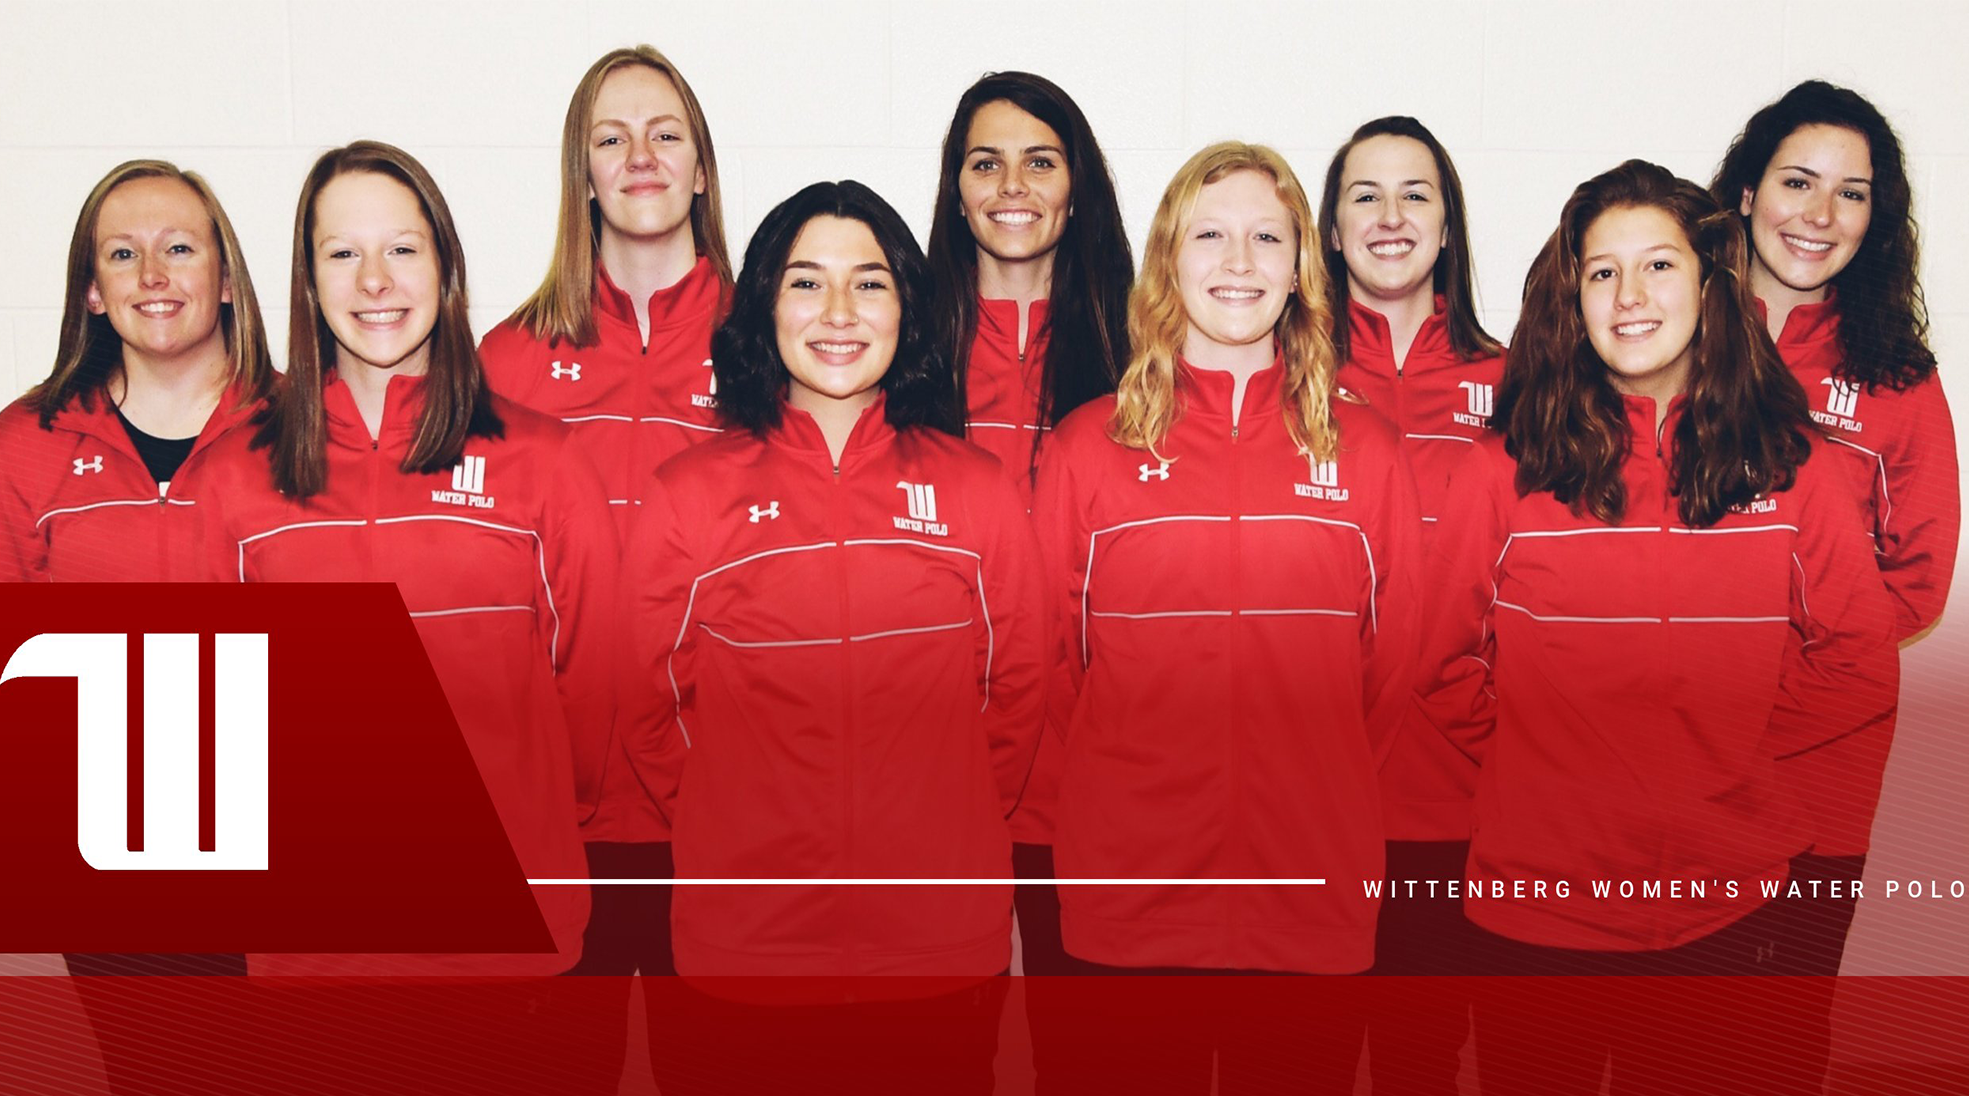 2015-16 Wittenberg Women's Water Polo Team Photo